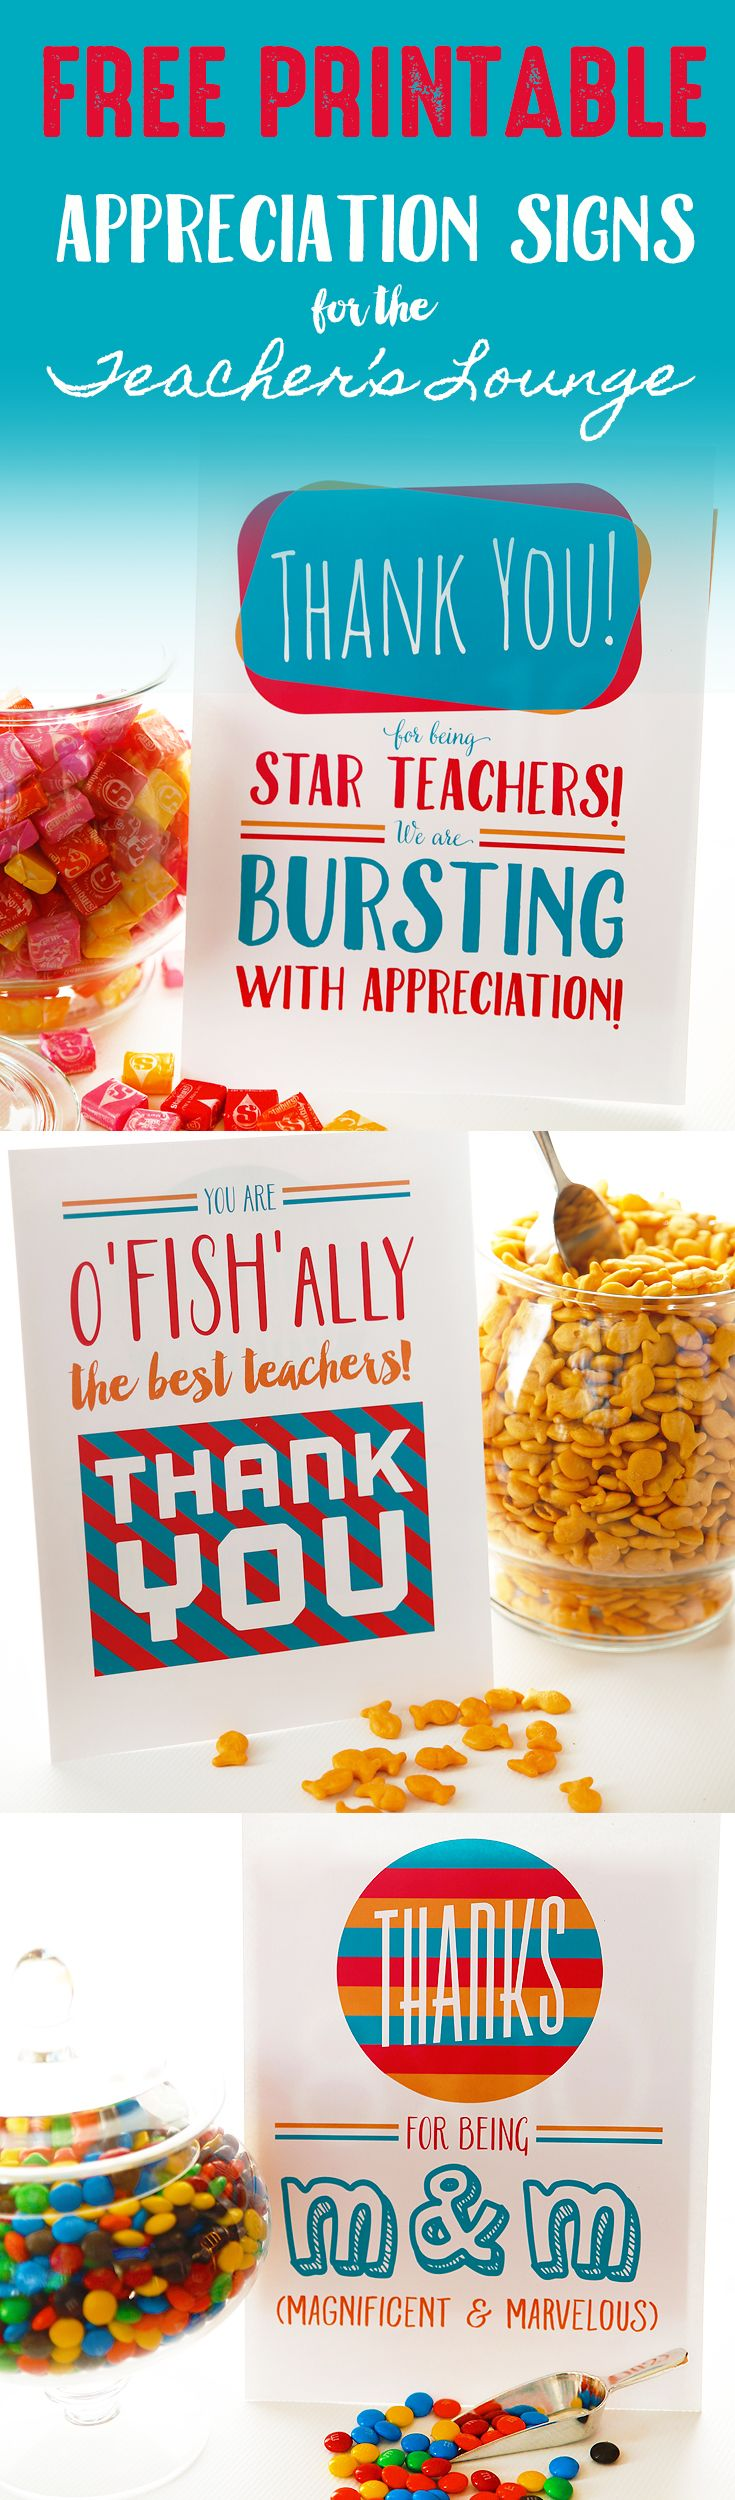 M & M appreciation sign for teacher lounge. Free printable signs to pair with treats for your teachers!